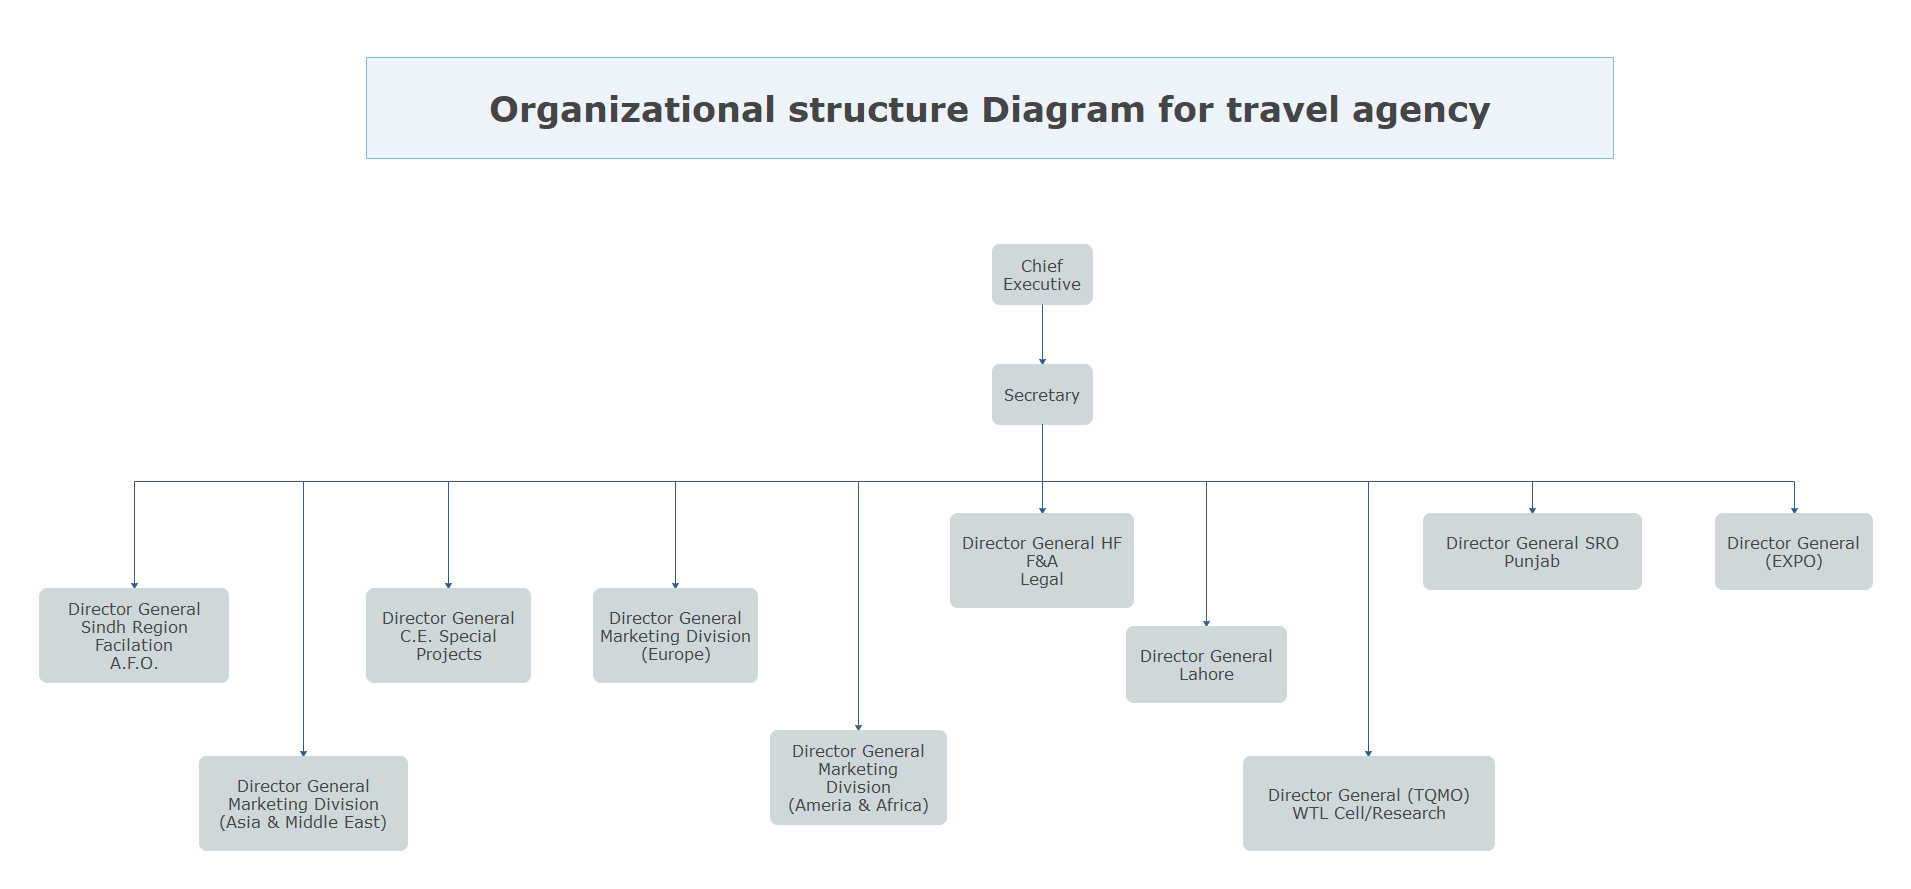 Organizational Structure Diagram for Travel Agency